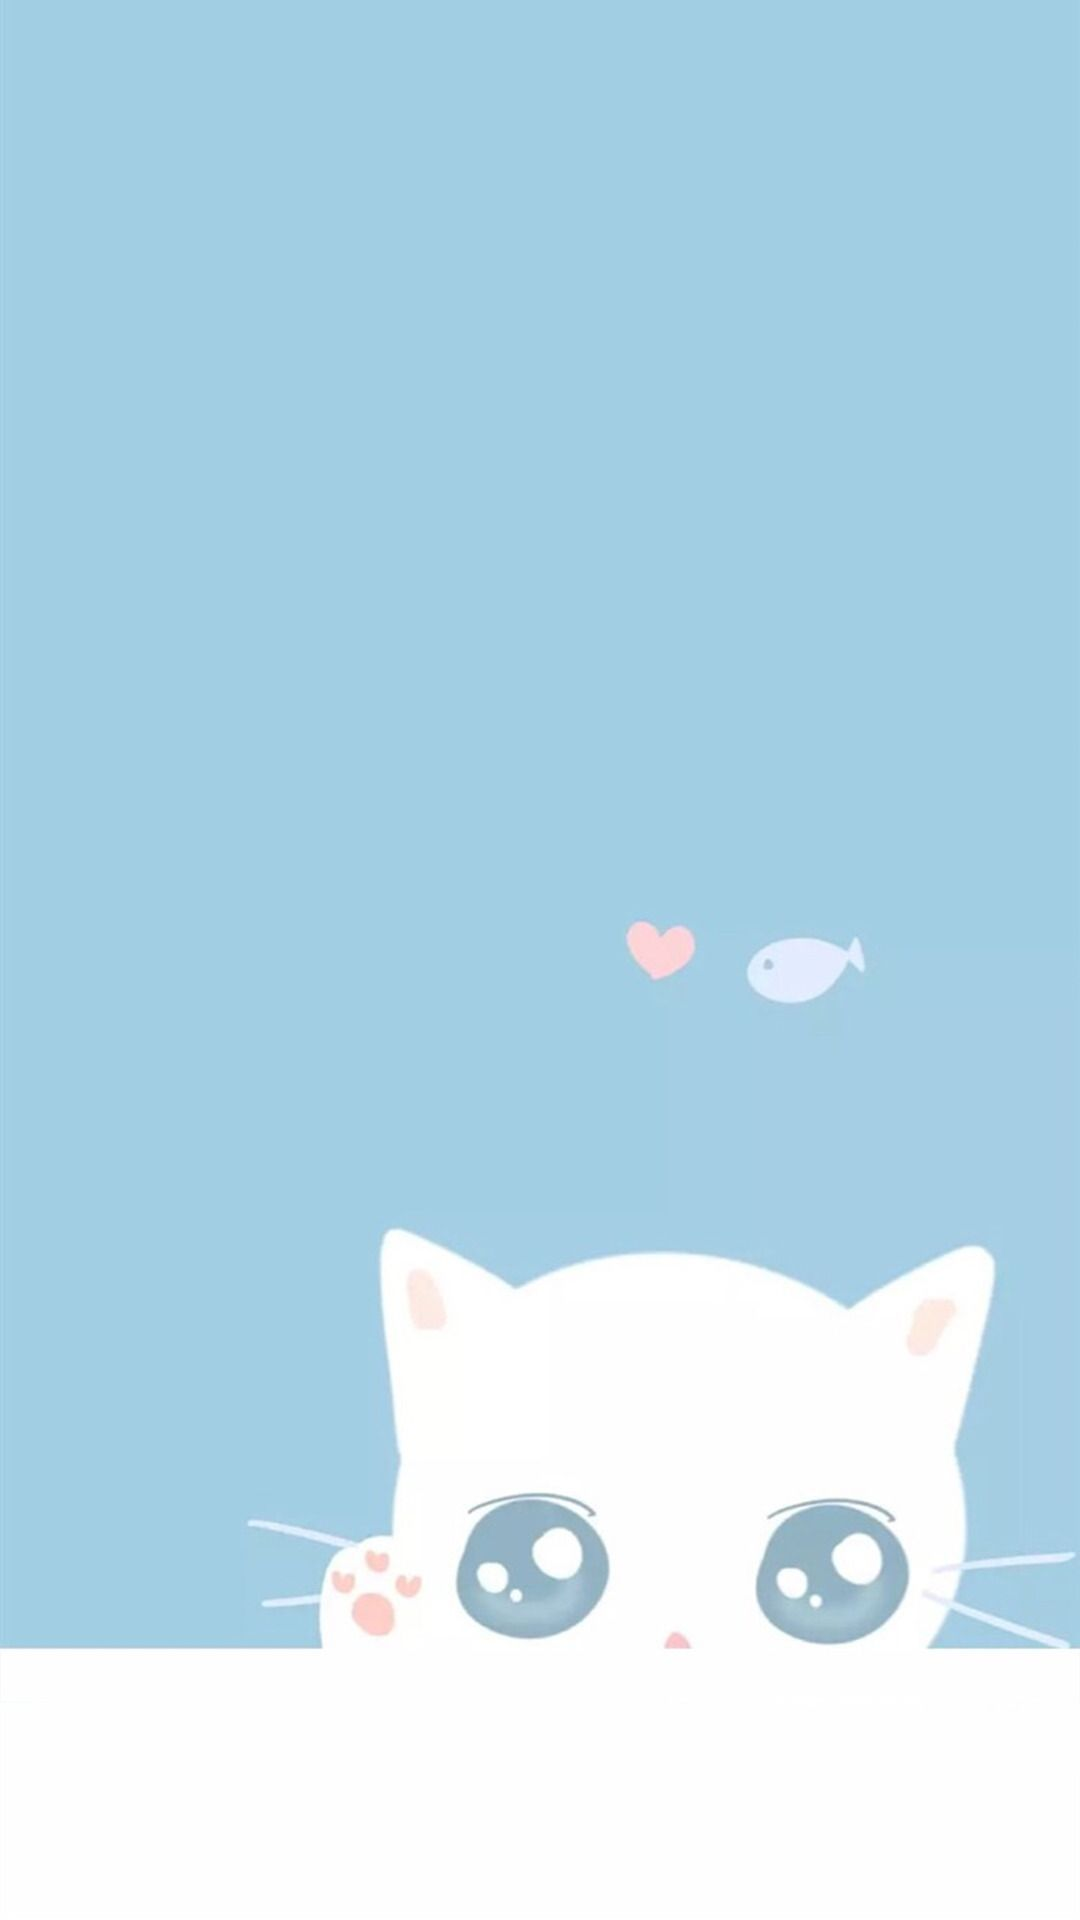 Cute Blue screen saver wallpaper